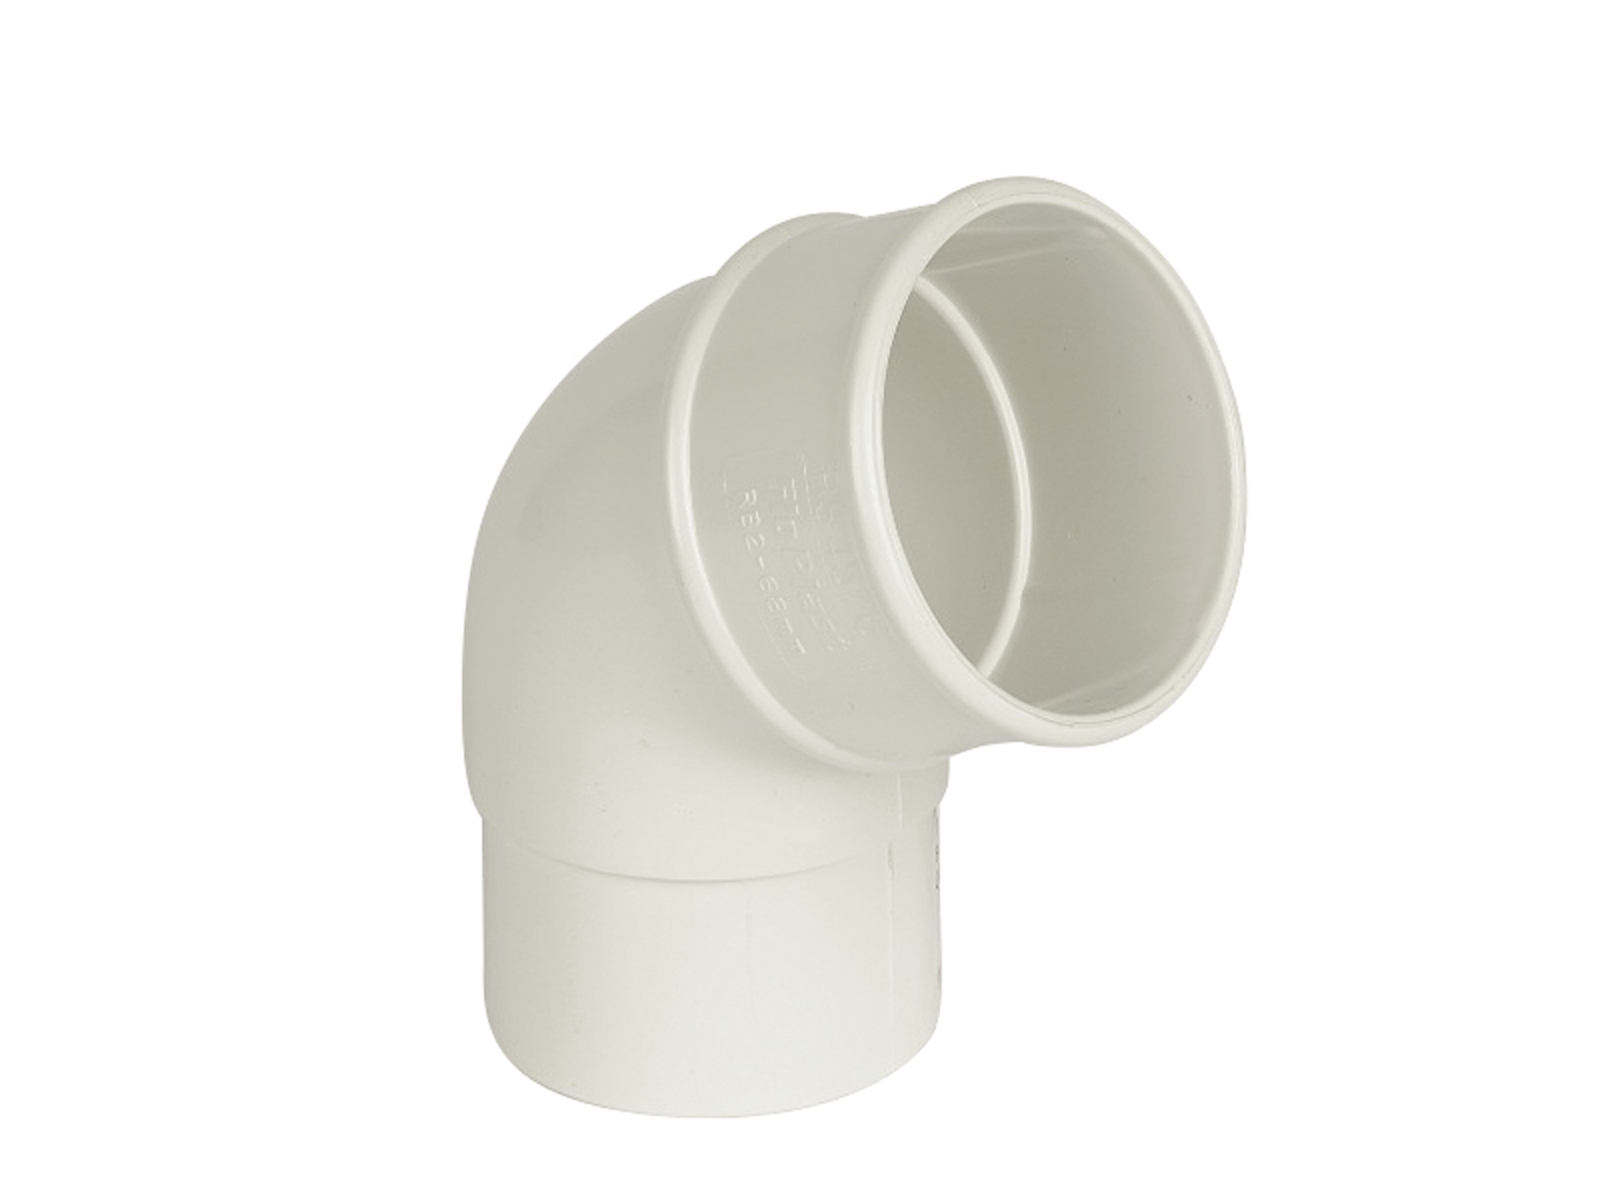 Floplast RB2WH 68mm Round Downpipe - 112.5* Offset Bend - White